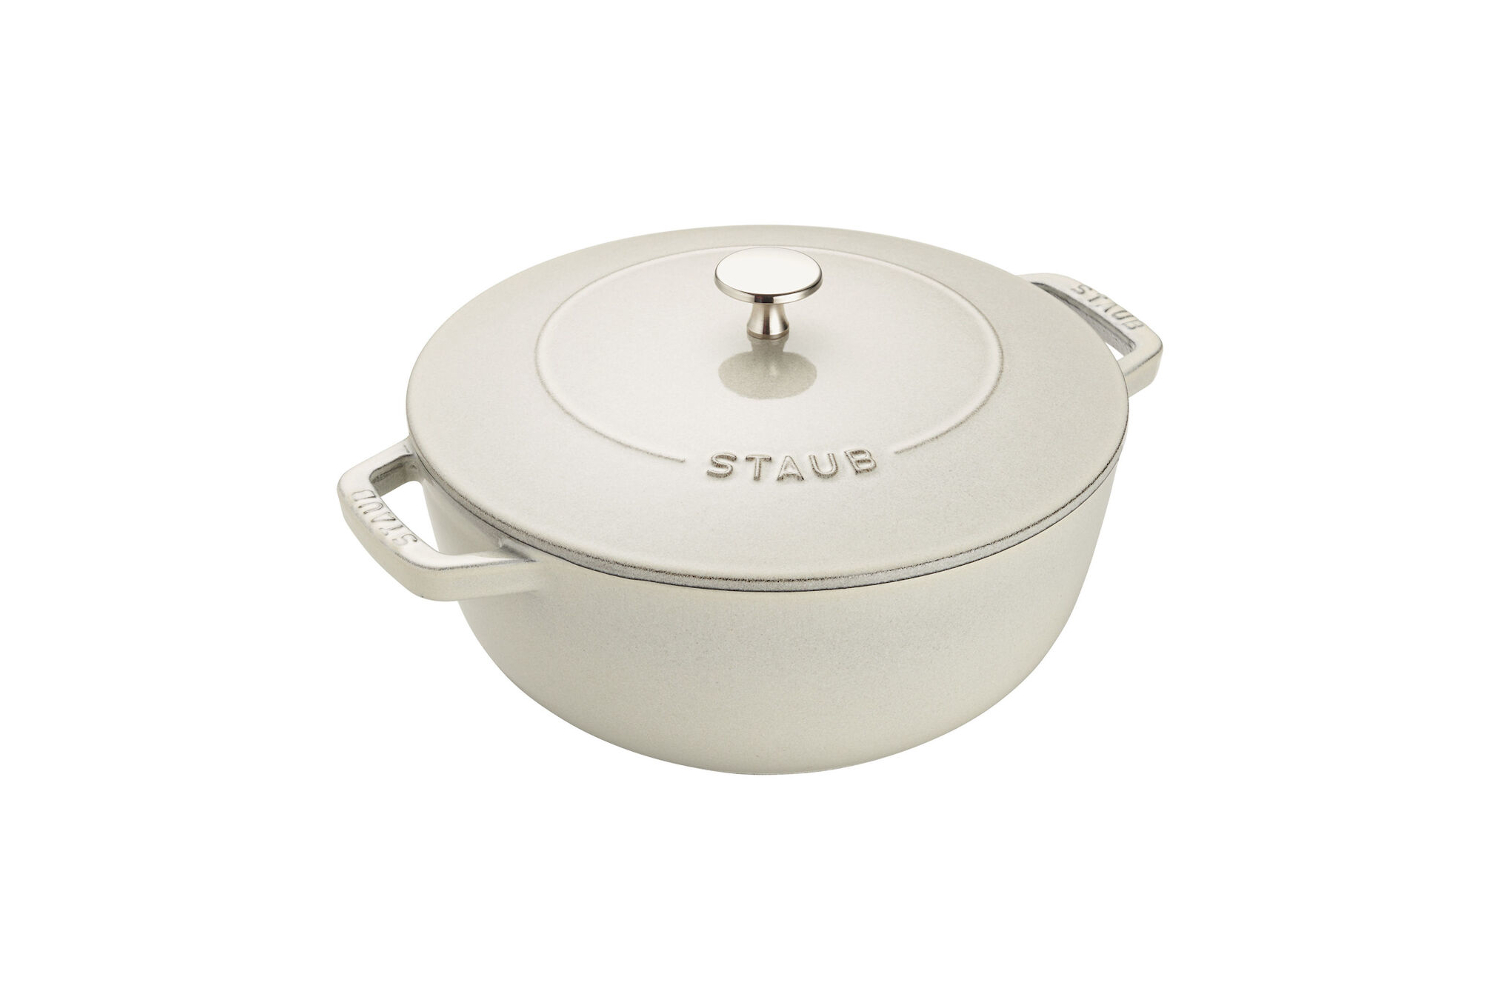 Staub Cast Iron 3 3/4 qt. Essential French Oven - White Truffle